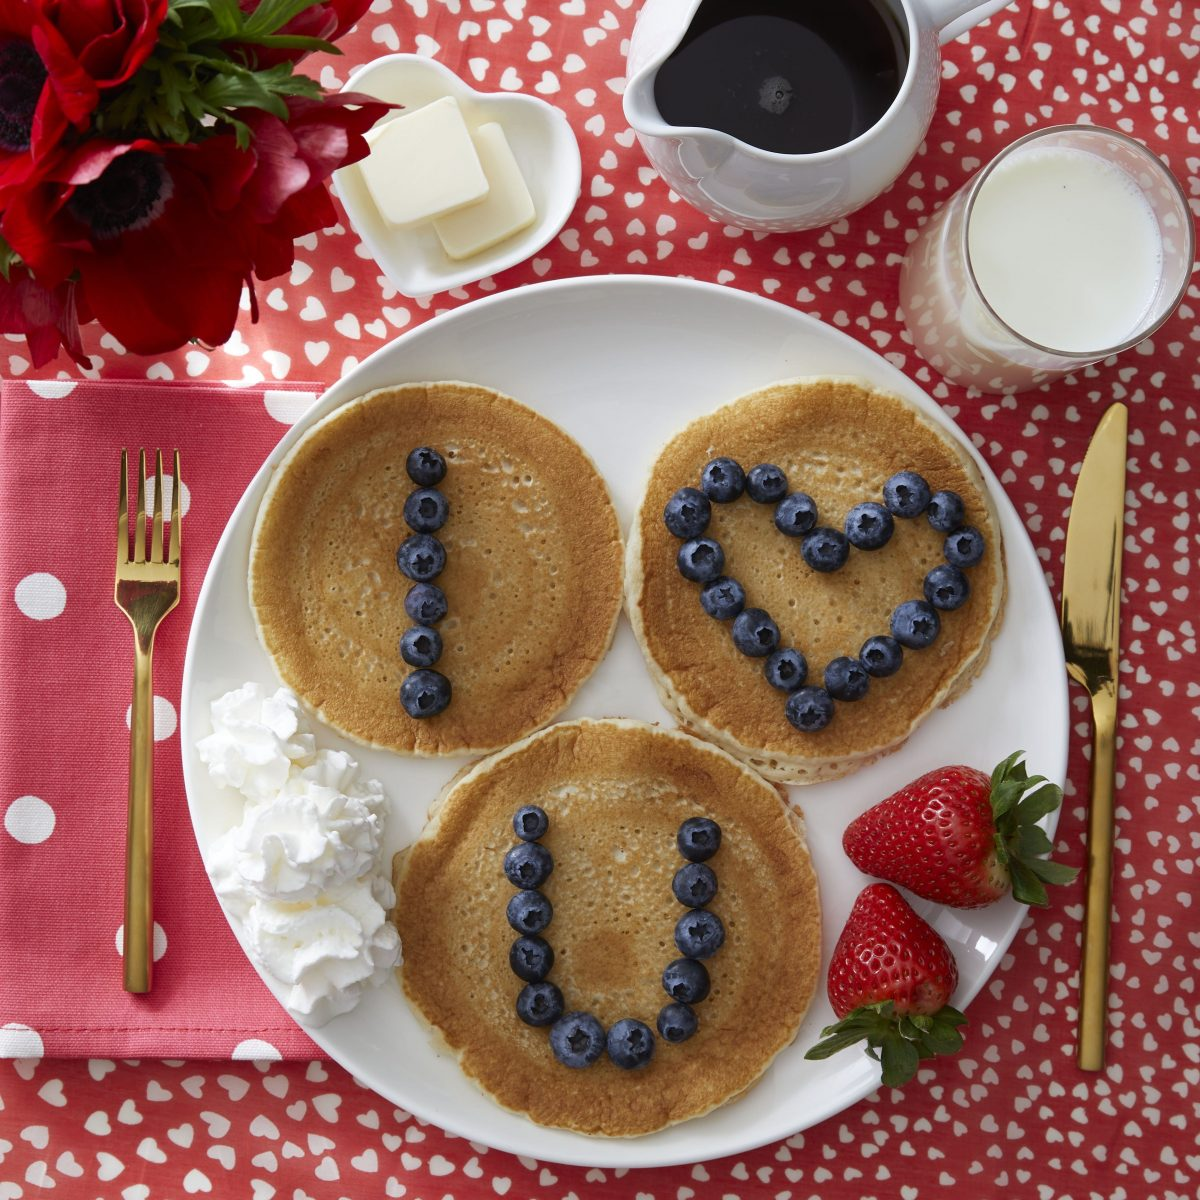 Darcy Miller Designs, Valentine Breakfast, Valentines, breakfast, I heart you, love note, pancakes, berries, blueberries, sweet breakfast, breakfast table, easy snack, Darcy Miller, DIY